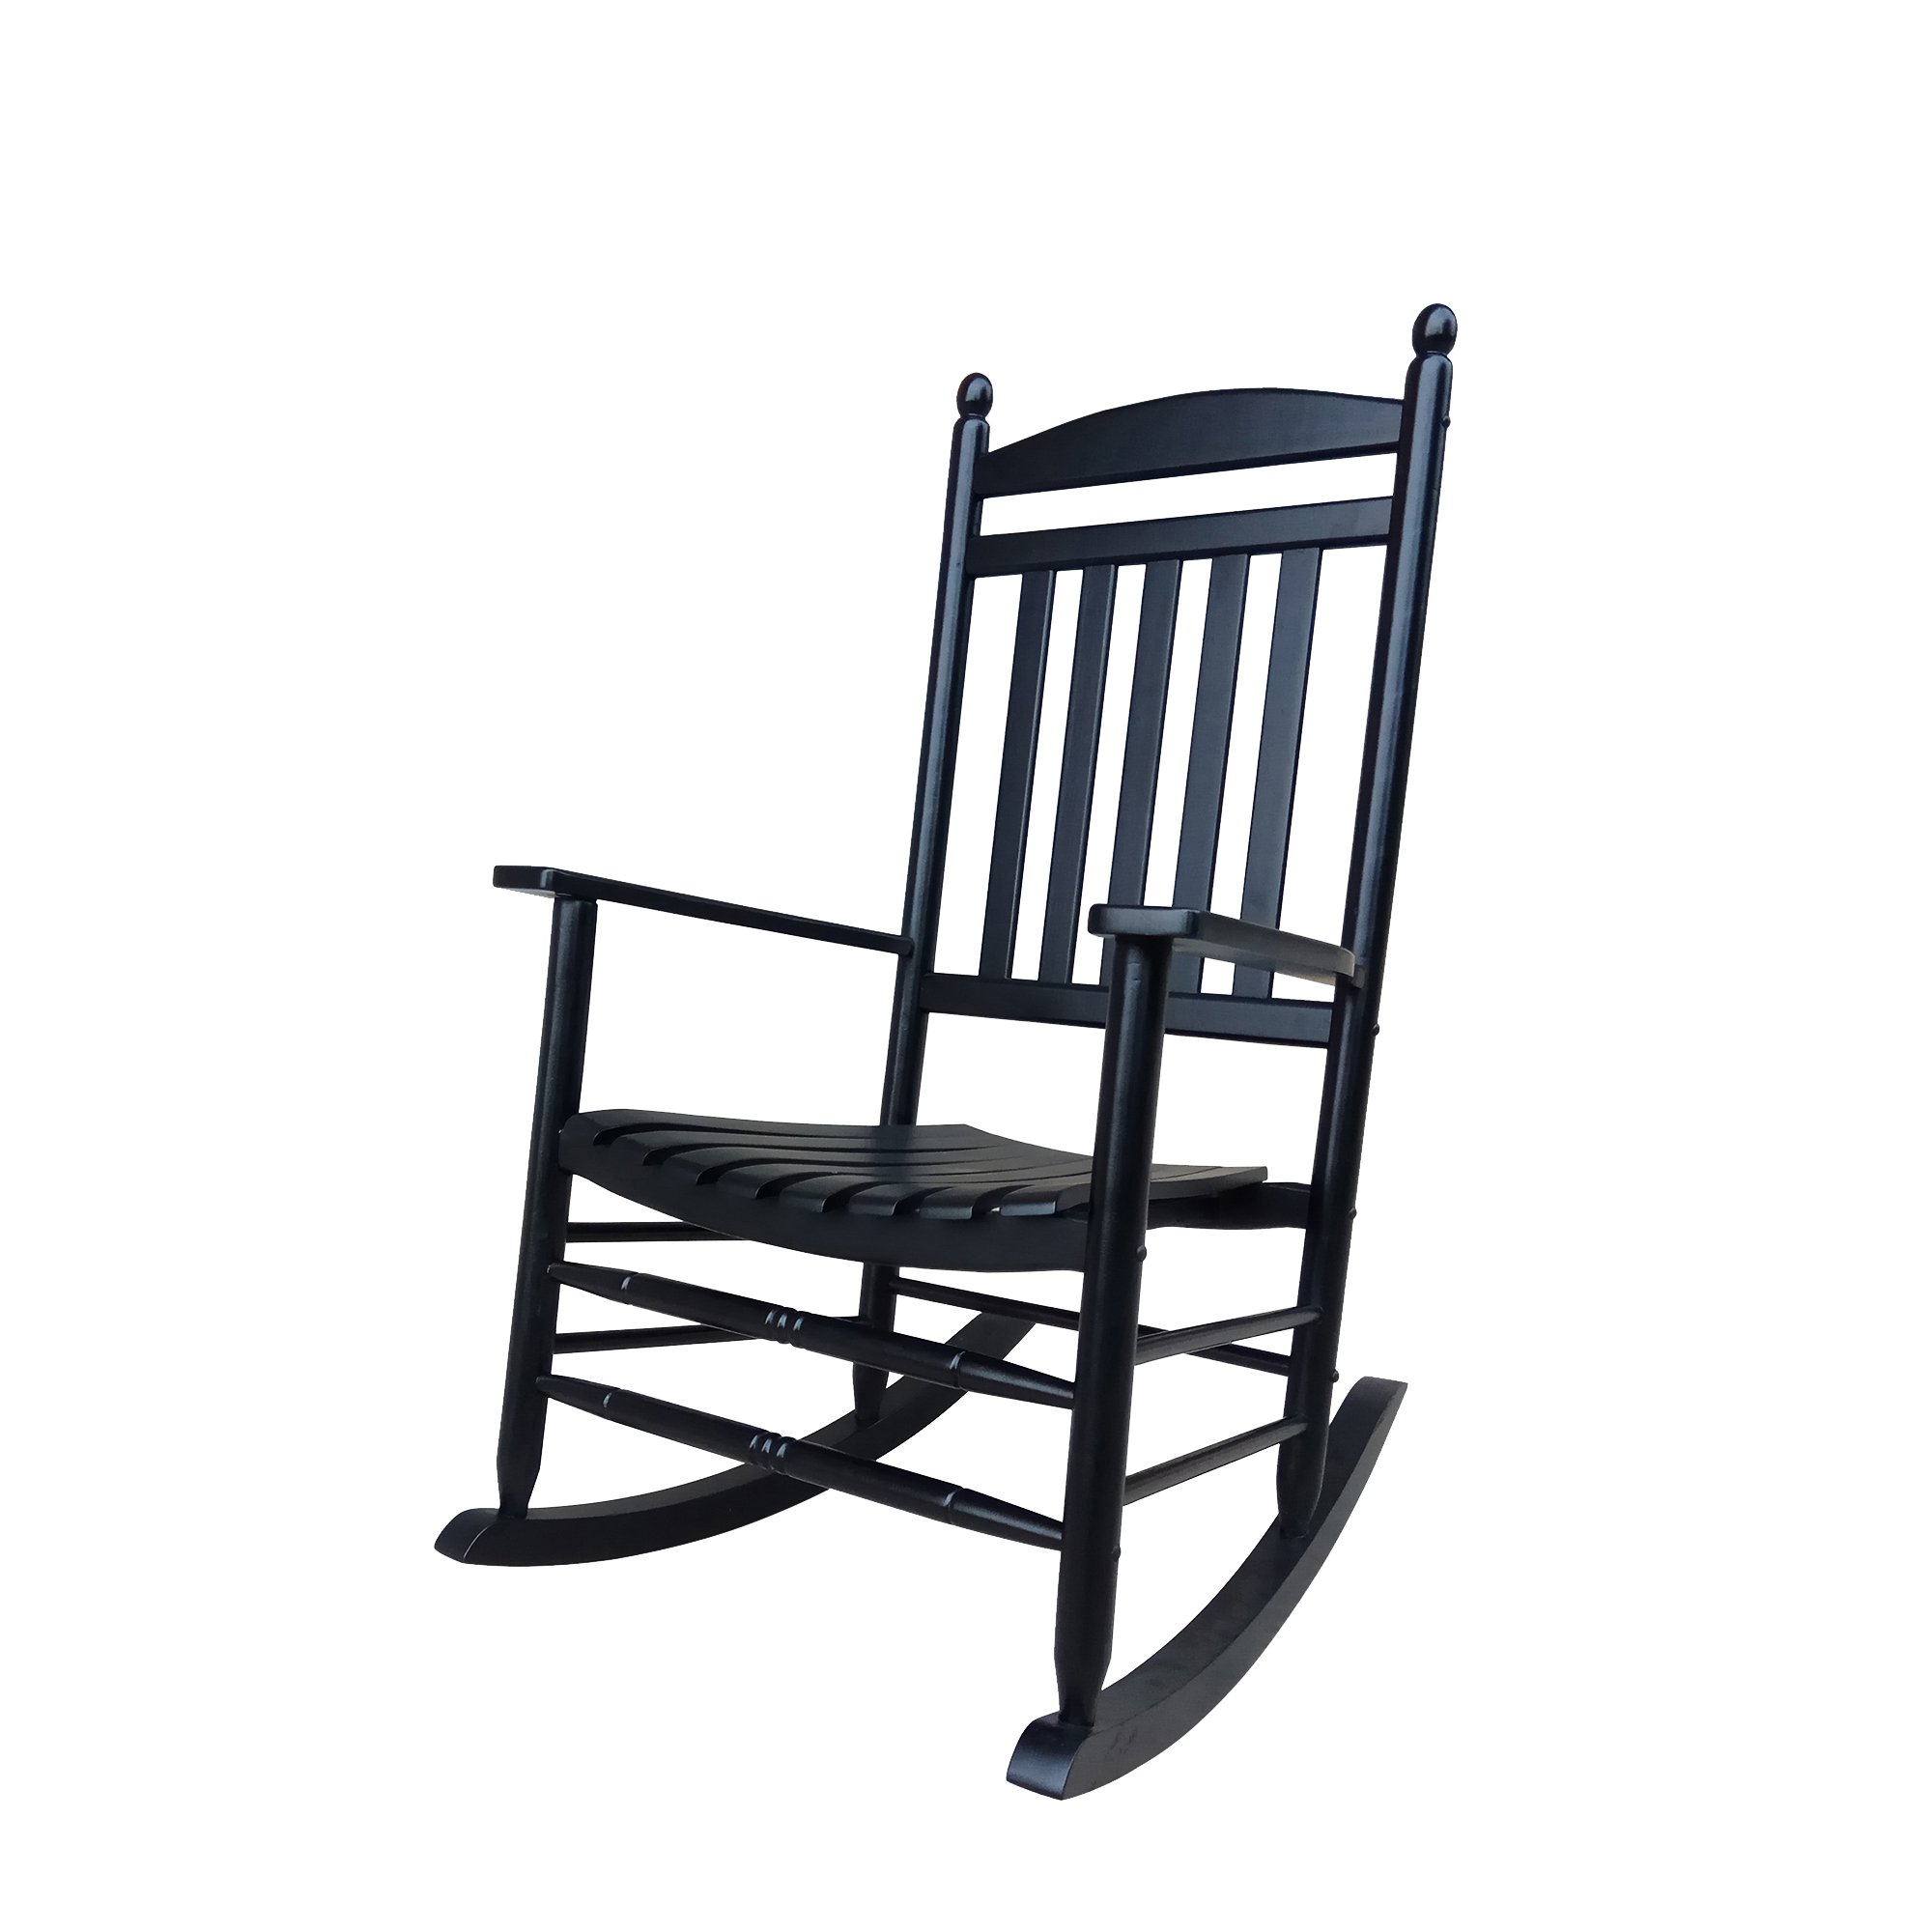 Rocking Rocker-A040BK Black Porch Rocker/Rocking Chair -Easy to Assemble-Comfortable Size-Outdoor or Indoor Use by Rockingrocker